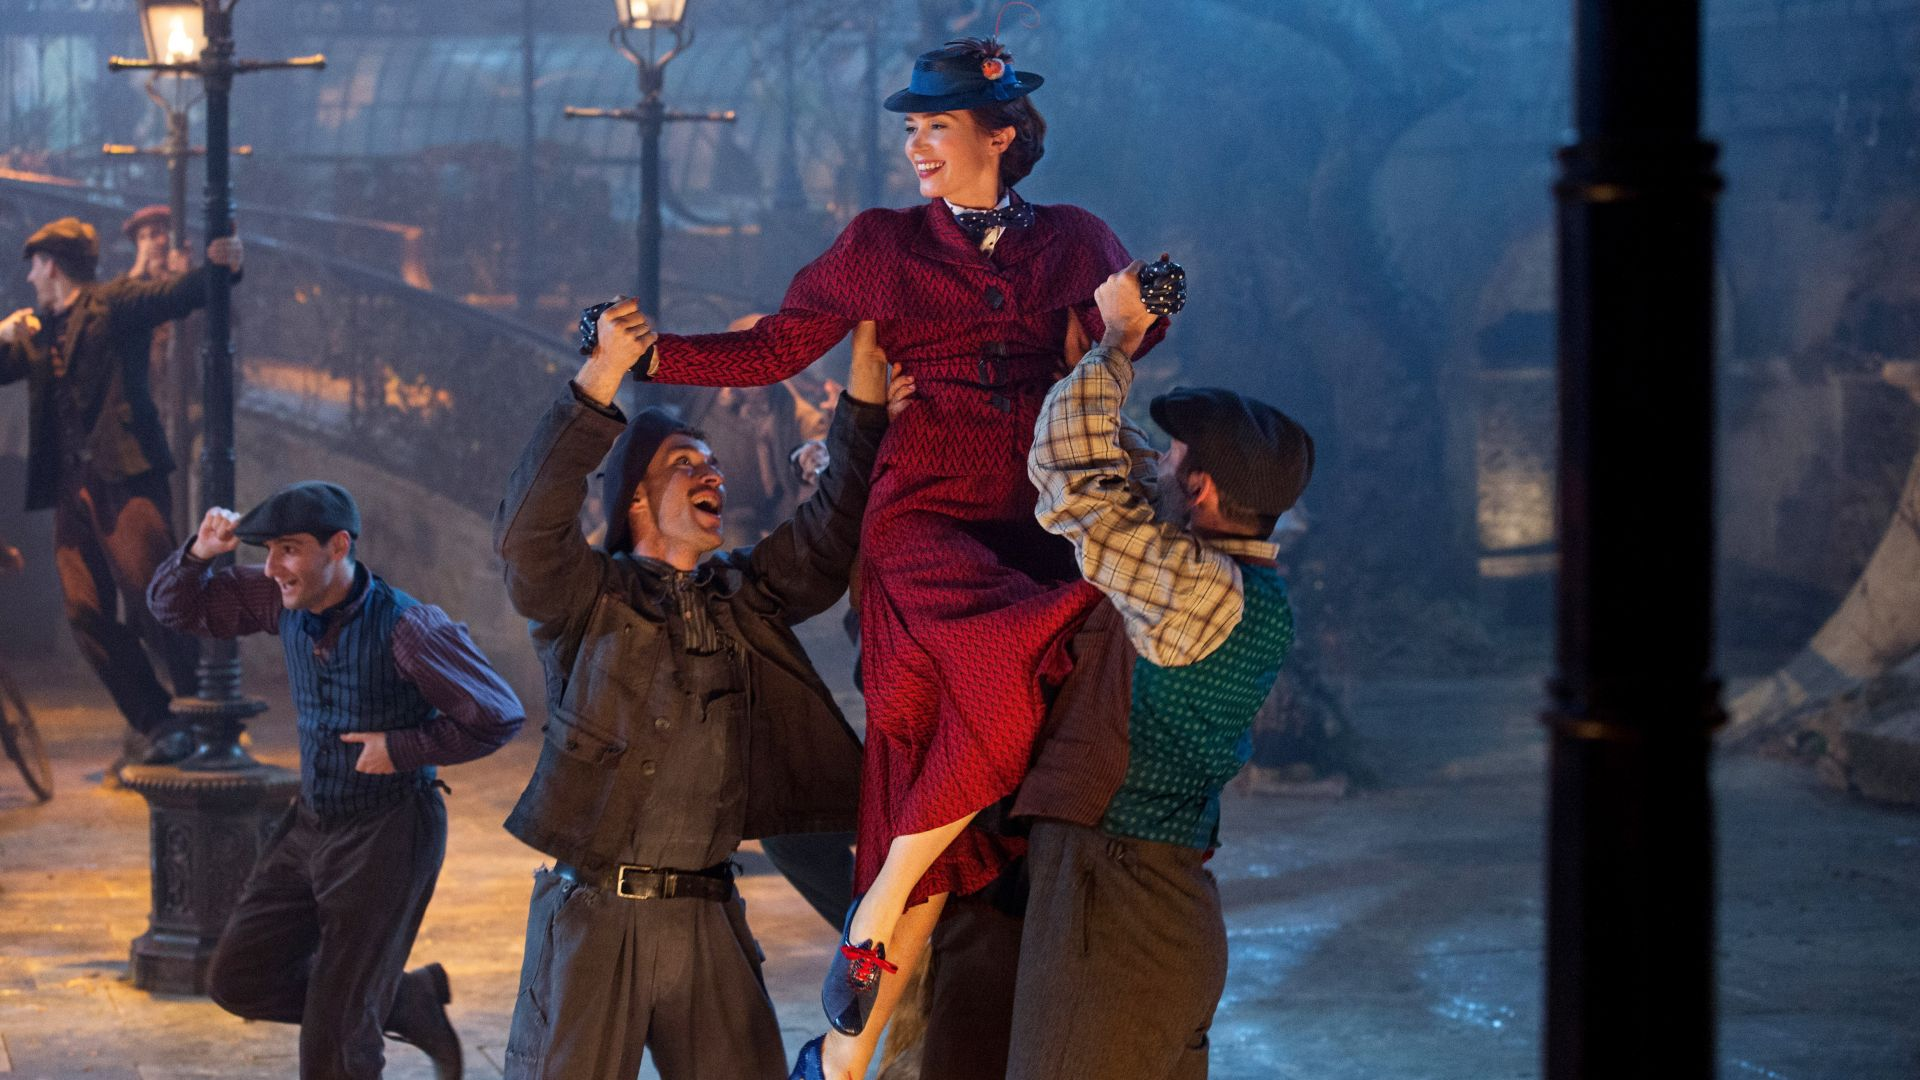 Mary Poppins Returns, Emily Blunt, 4K (horizontal)